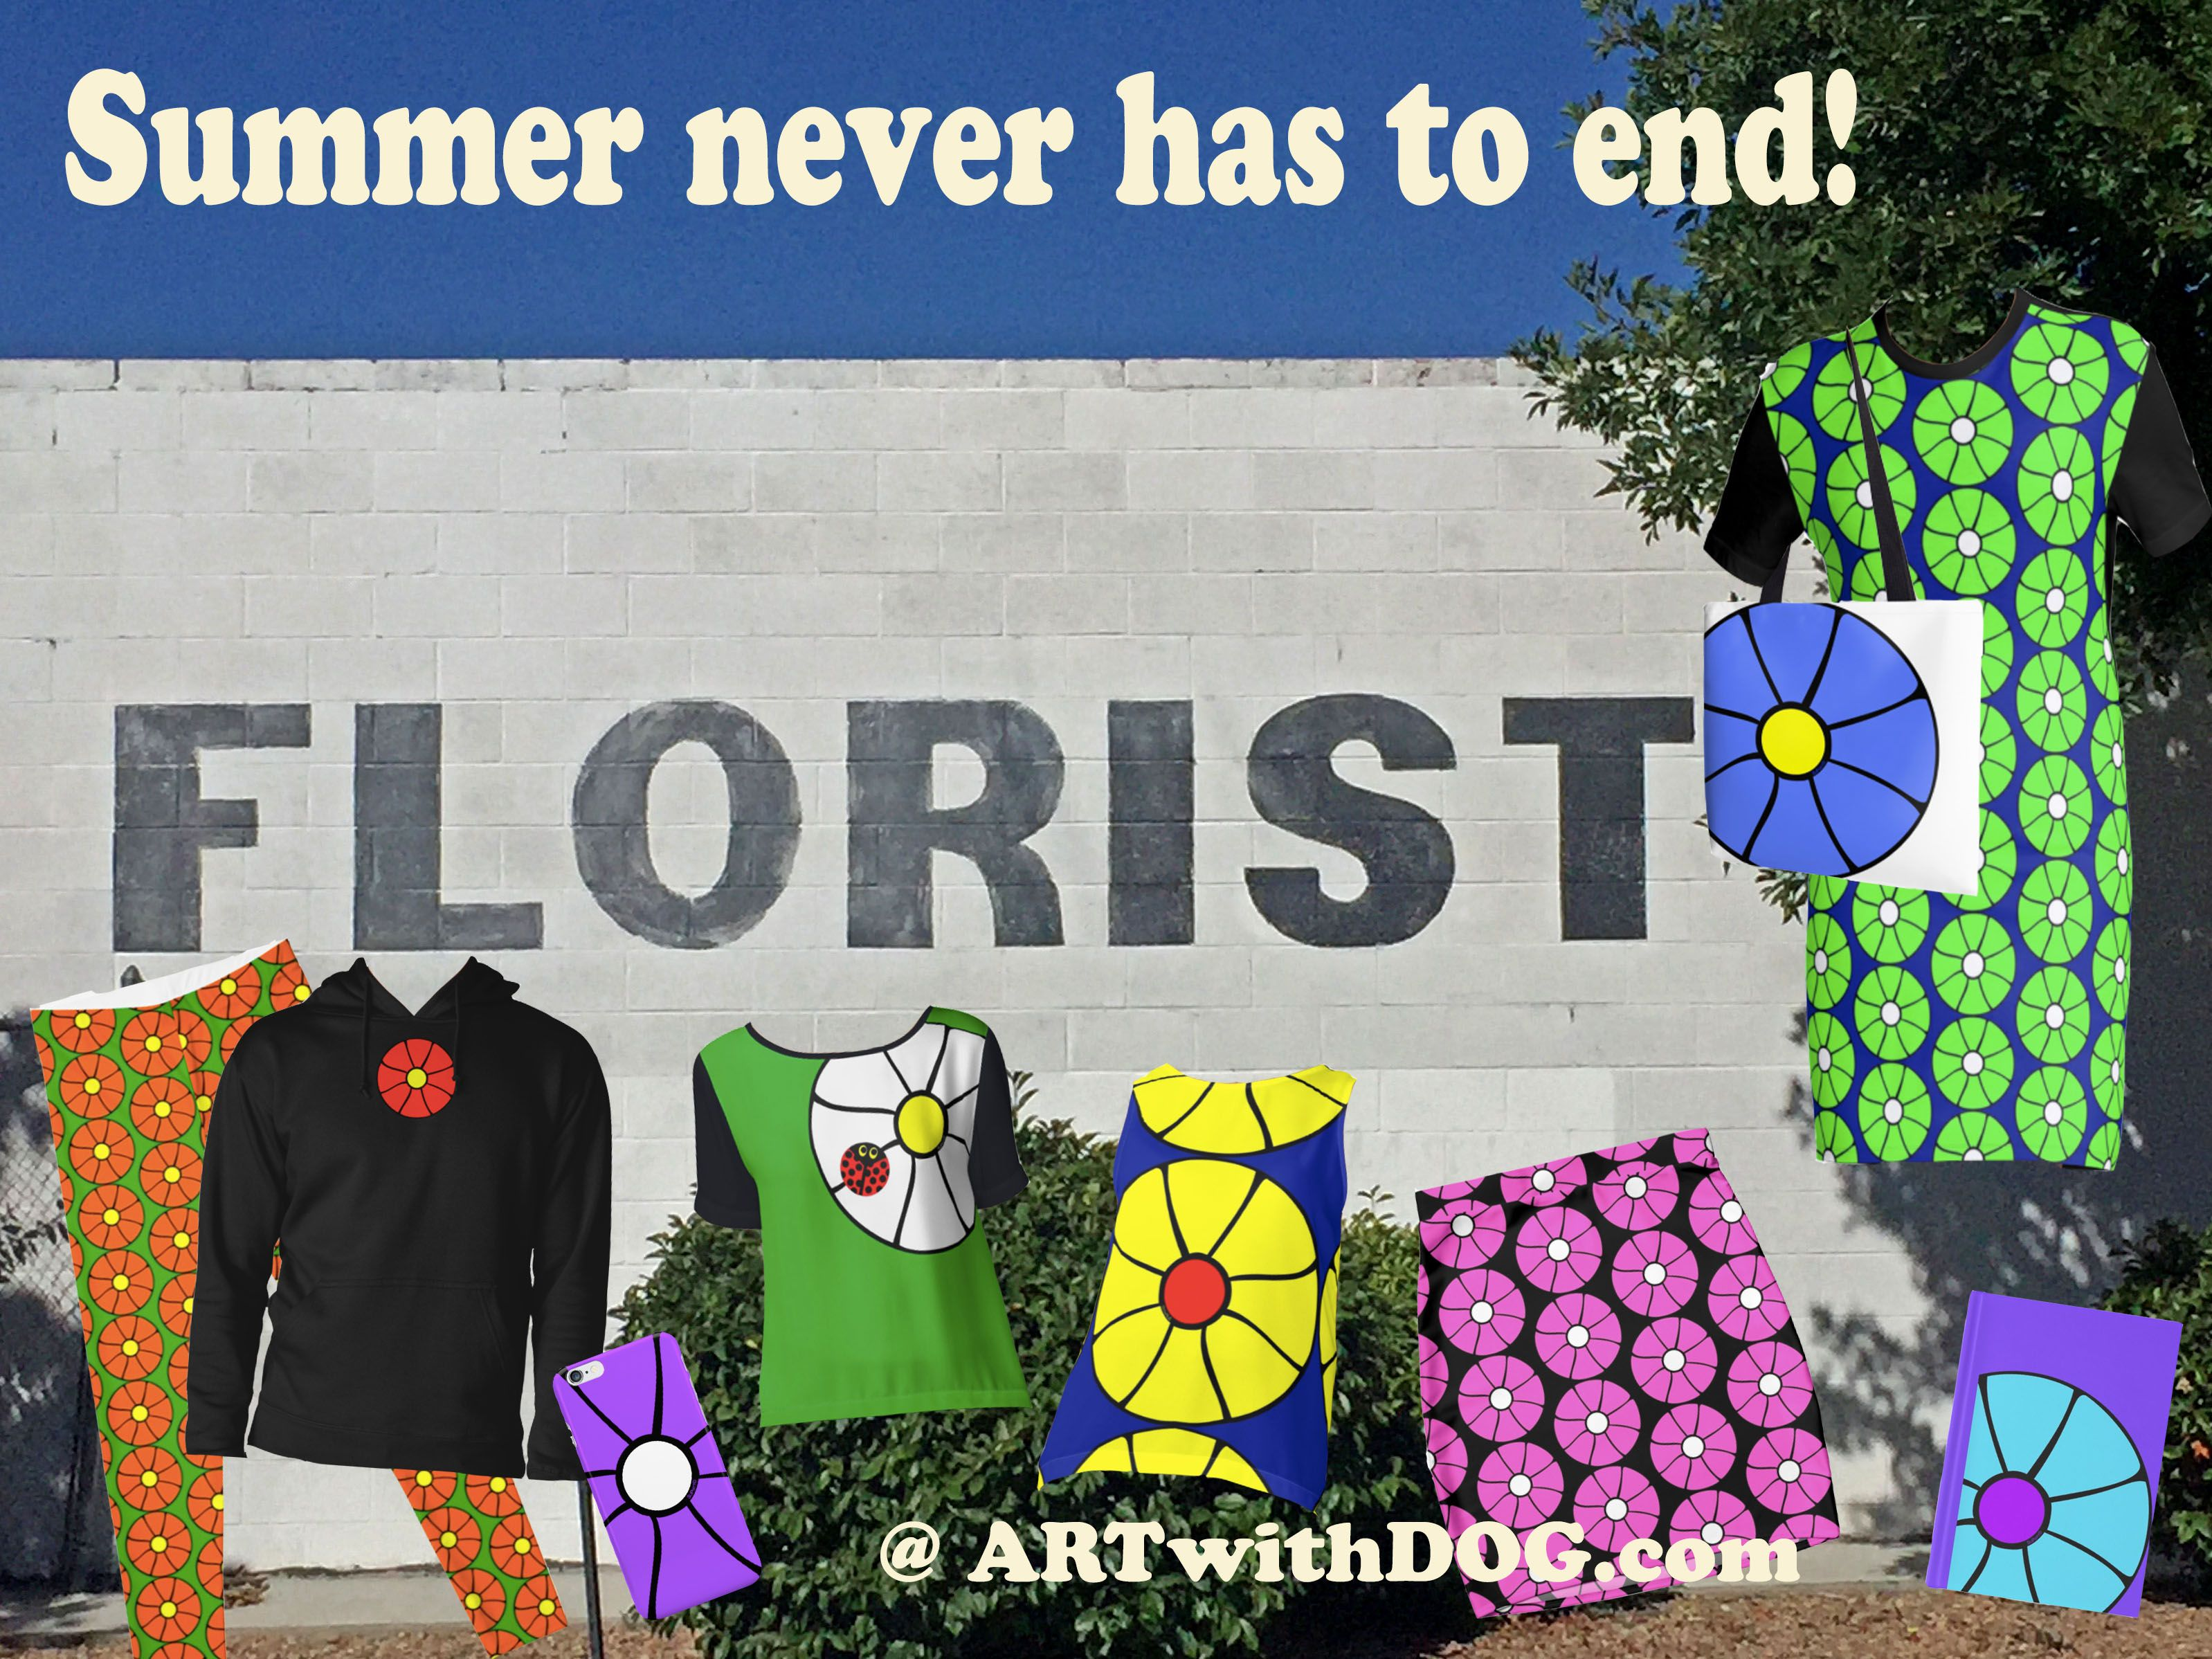 Bring Summer along all year with happy sunny flowers @ ARTwithDOG.com       #Flowers #Summer #clothing #Floralclothing #Floral #Florist #Pants #Sweatshirts #iphone #iPhonecases #phonecases #Blouses #FloralPatterns #TeeShirts #TShirts #Skirts #Journals #Dresses #Totebags #CoffeeMugs #TravelMugs #Fall #Autumn #winter #spring #SpringFlowers #Bedding